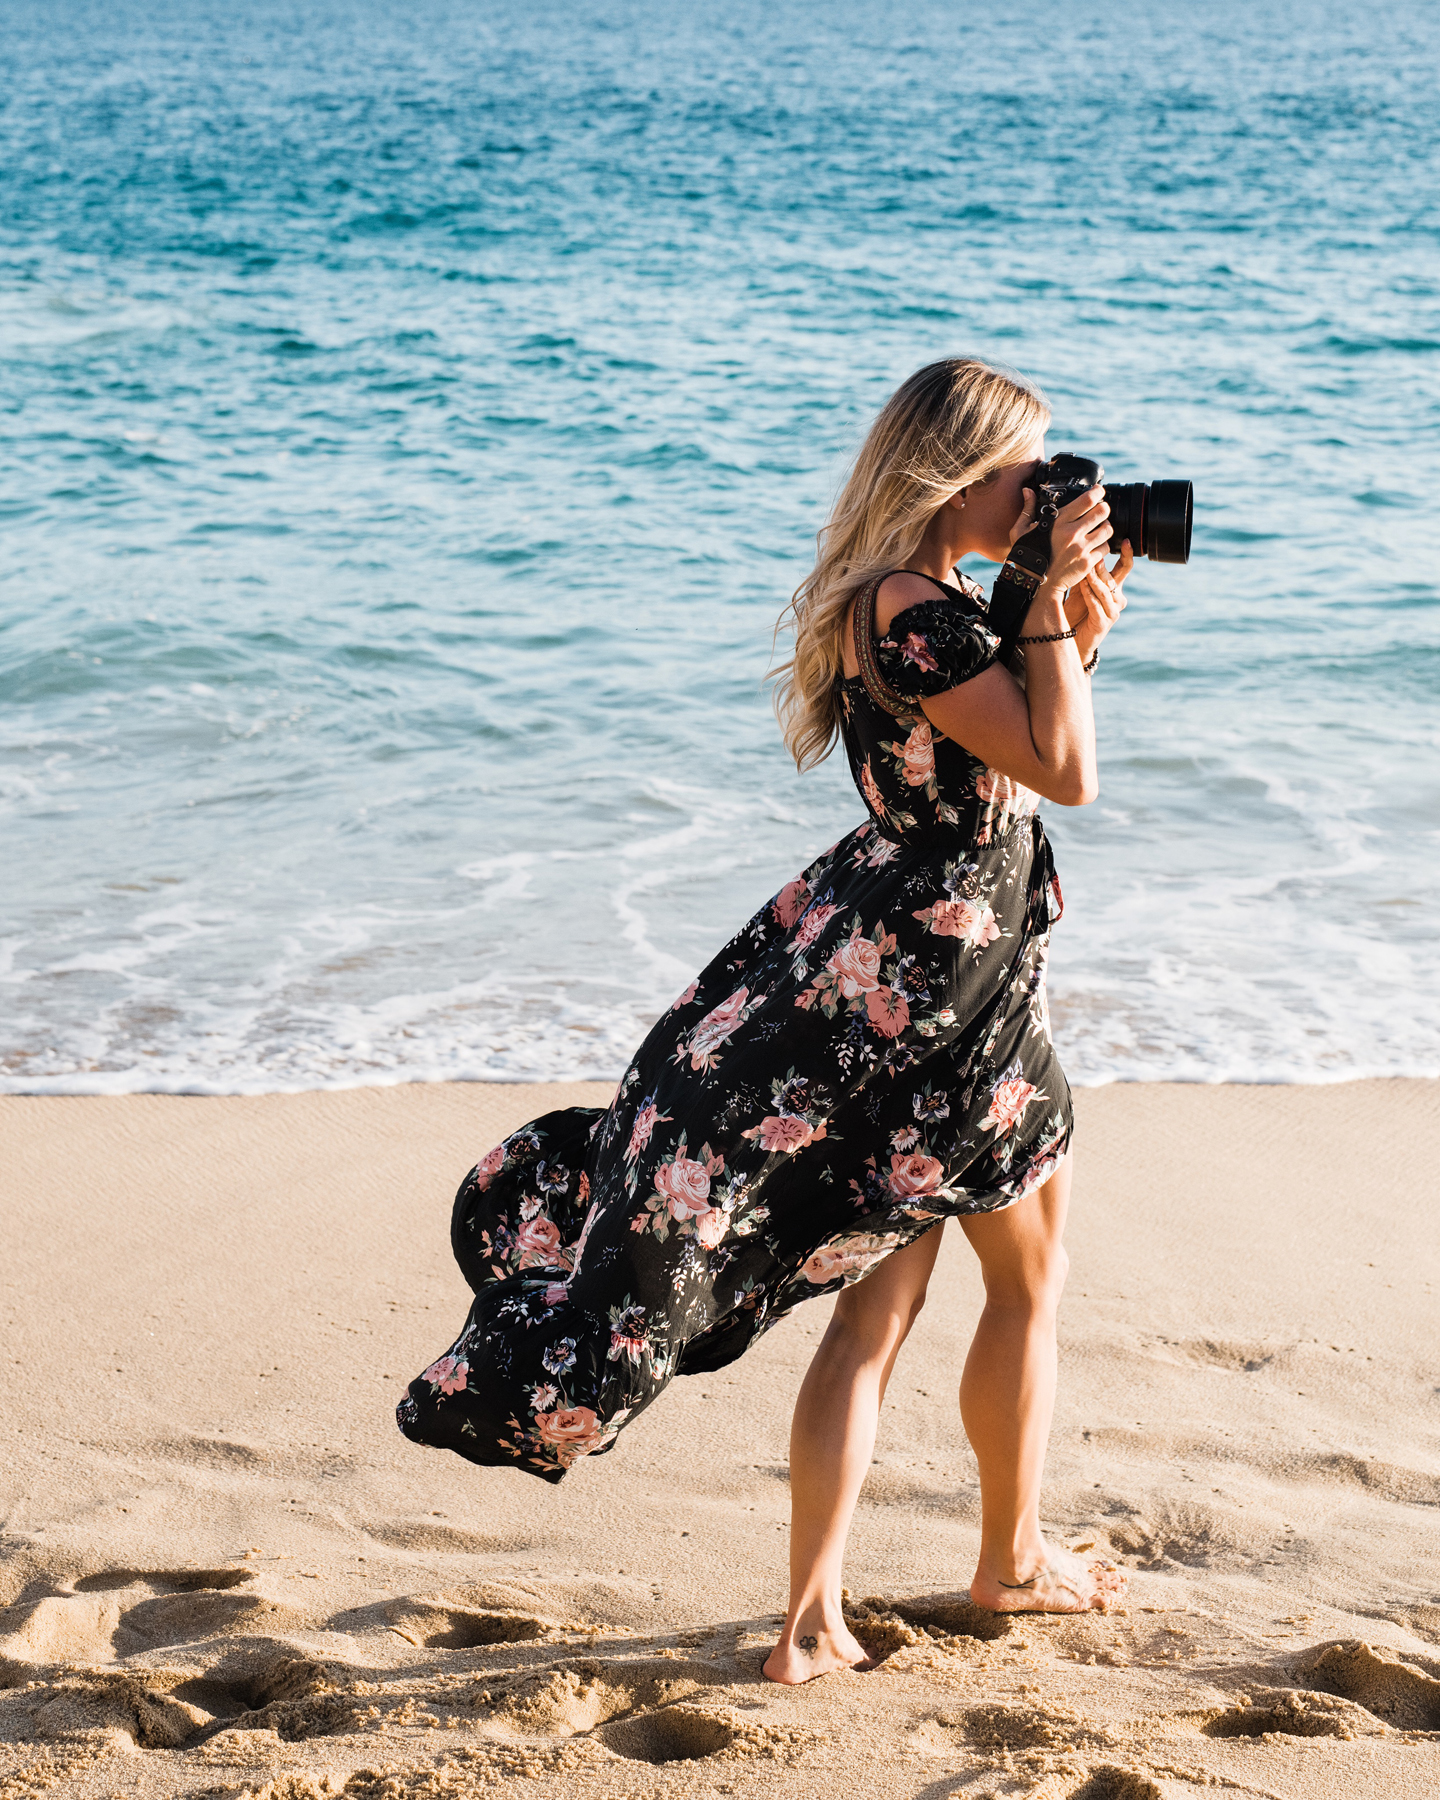 A portrait in my favourite workplace - barefoot on the beach ✧ // Photo by the wonderful Savannah Rae Photo in Cabo San Lucas, Mexico